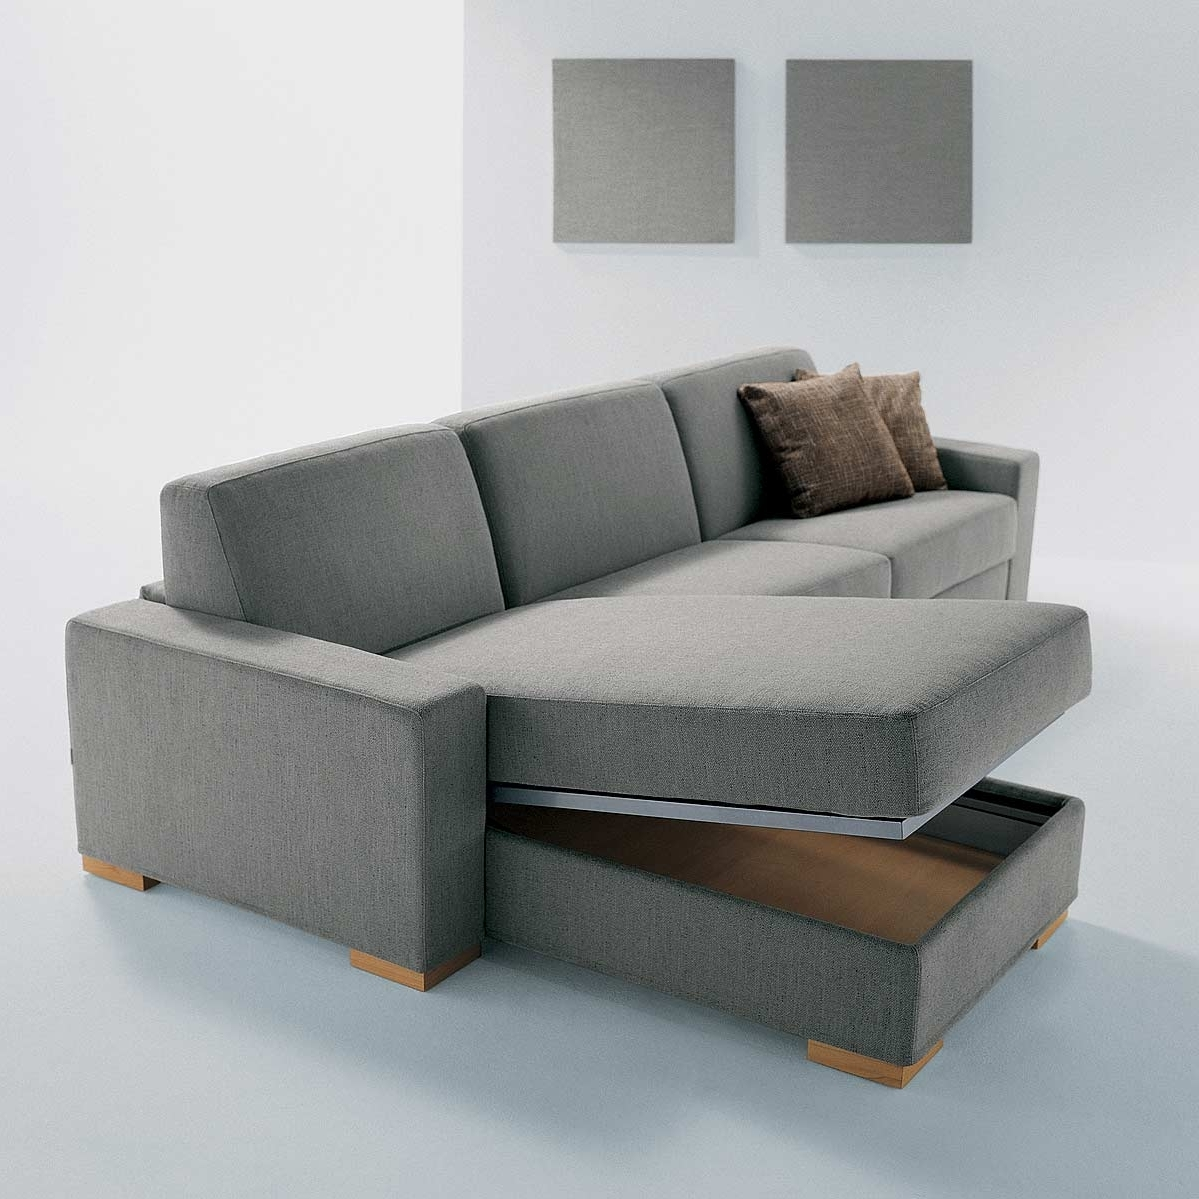 Famous Sectional Sofas With Storage With Regard To Furniture : Sofa With Drawers Fabric Sectional Sofas With Chaise (View 11 of 15)